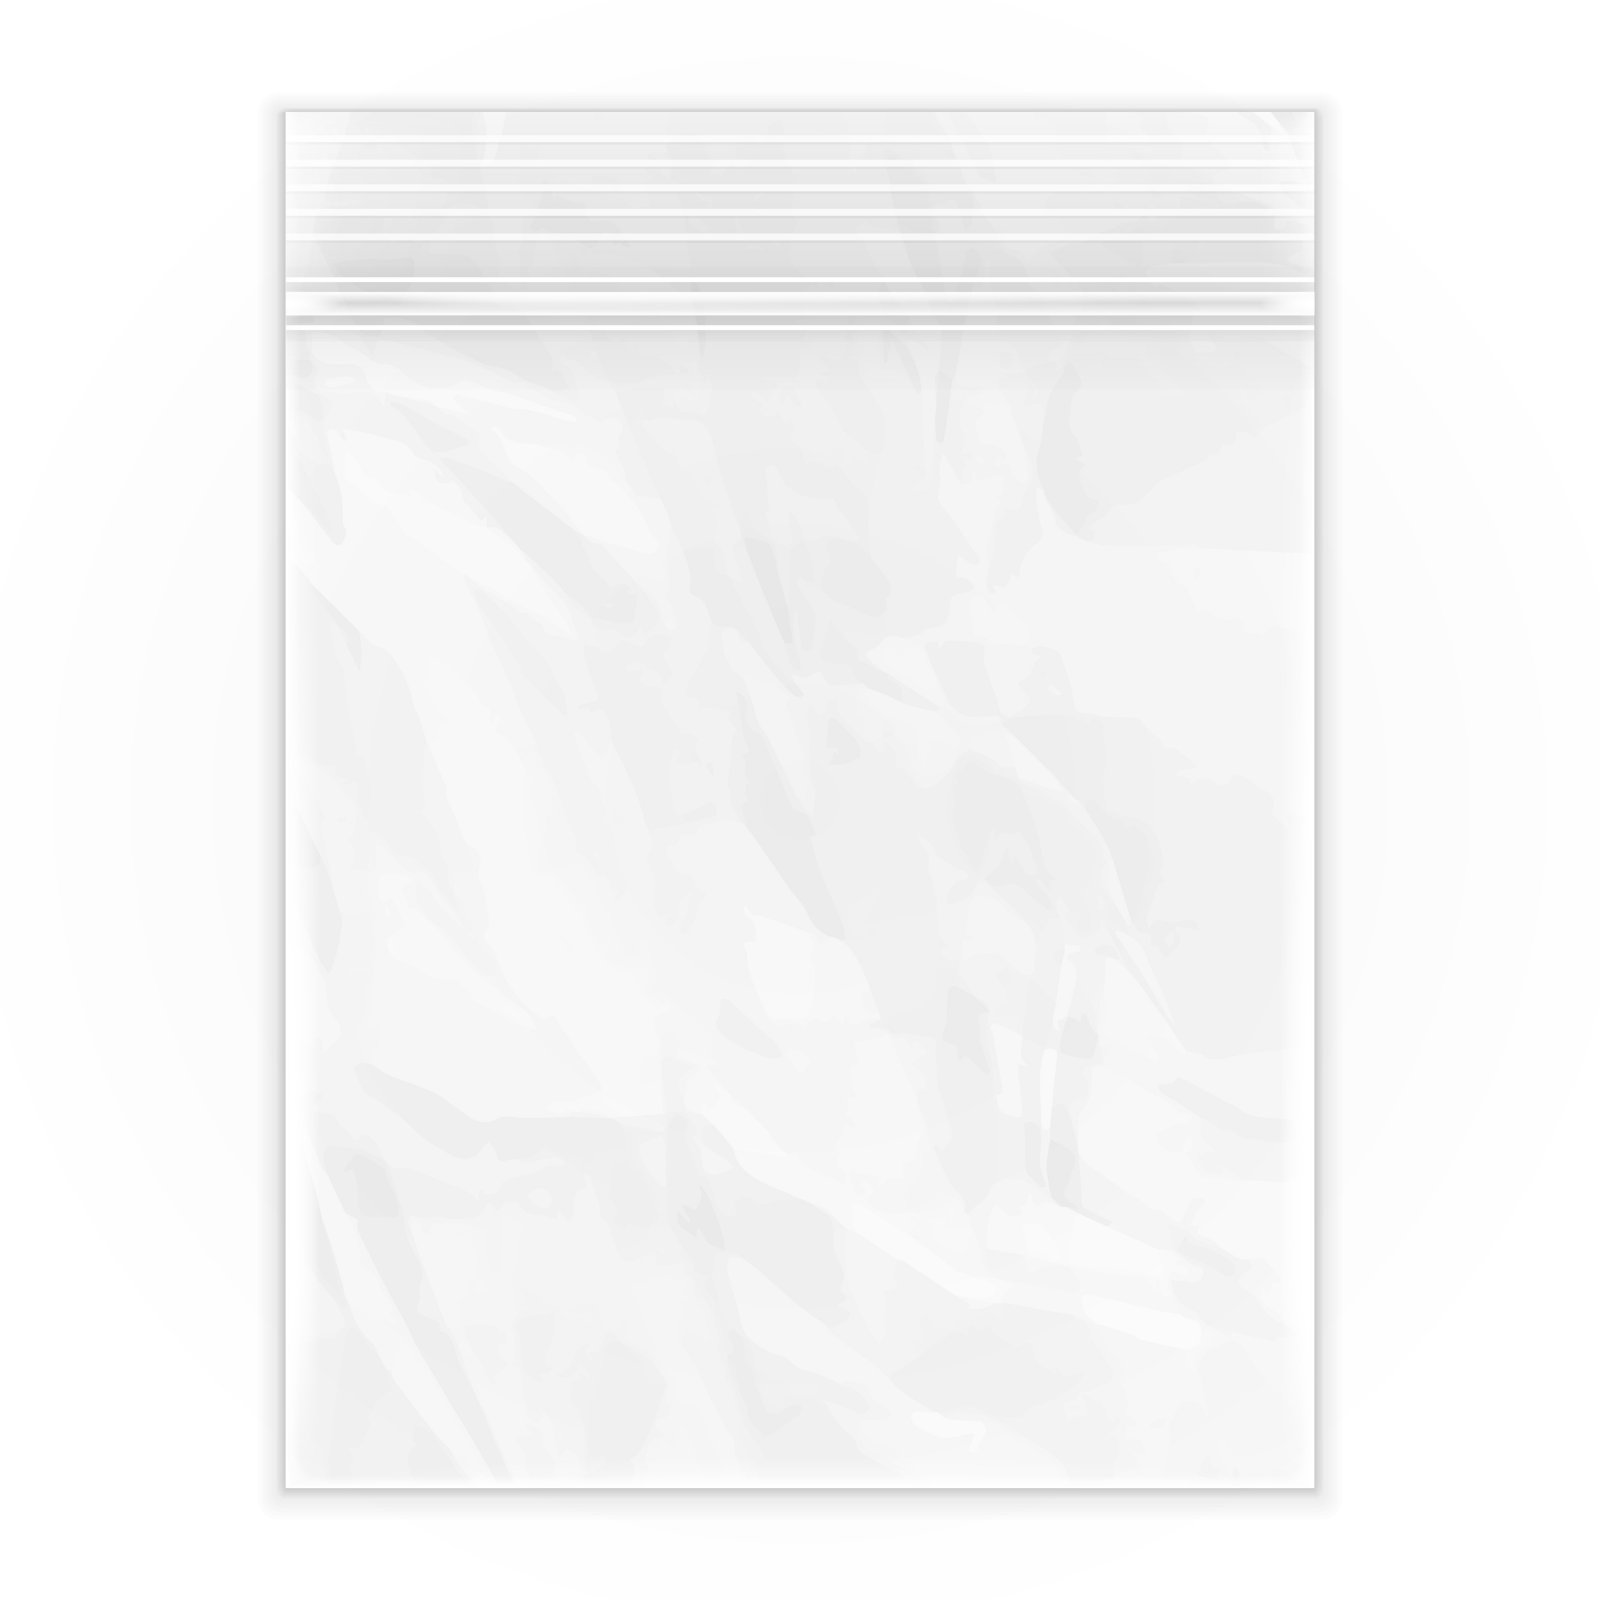 RECLOSABLE BAGS - 9X12 - 100 PK